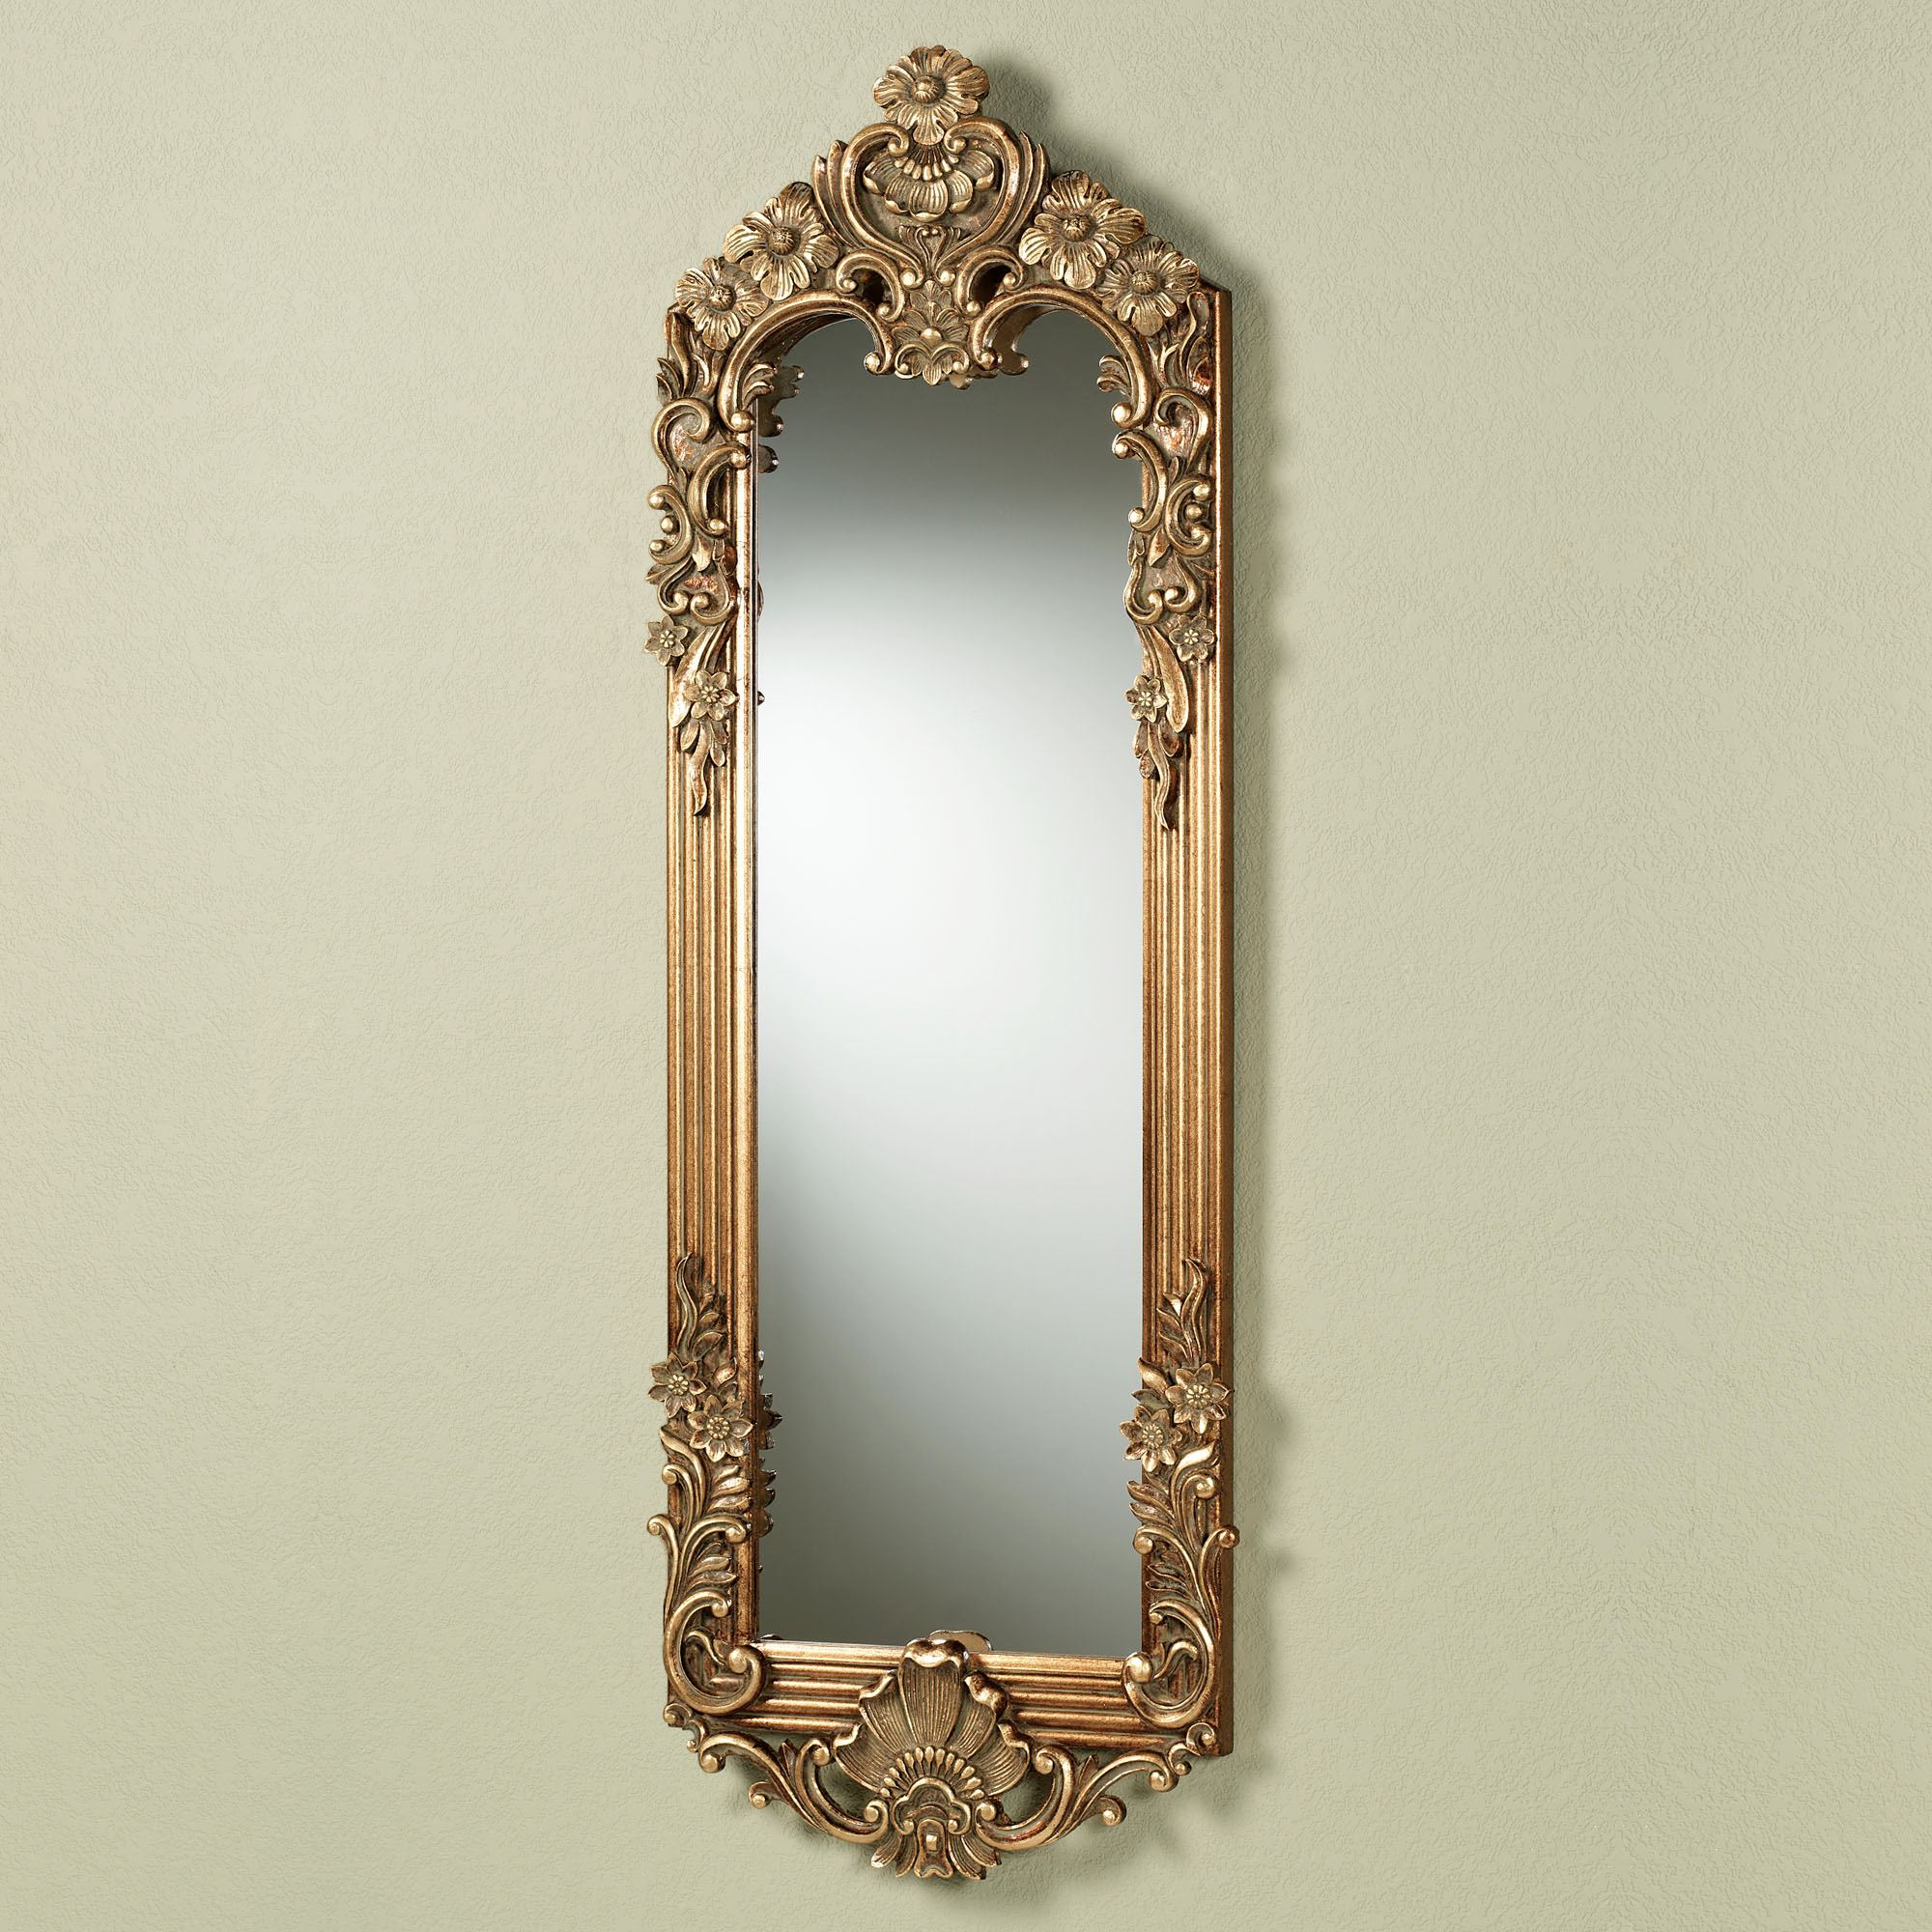 Long Silver Wall Mirrors With Most Recent Fancy Wall Mirrors Long Silver Mirror Floor For Sale Extra Large (View 7 of 20)